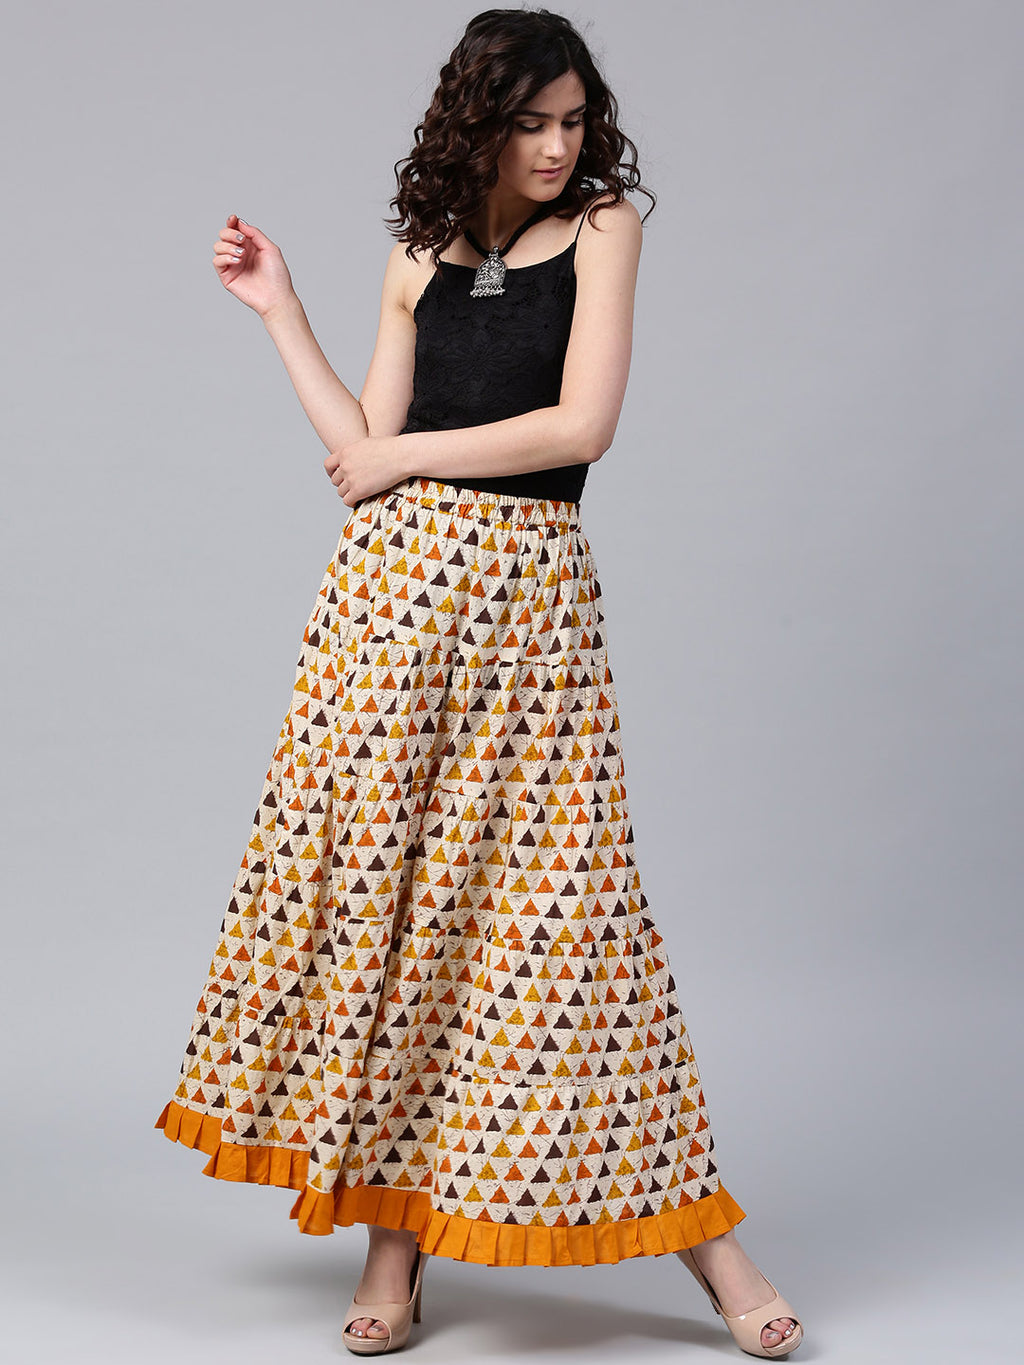 Cream & Yellow Geometrical Printed Tiered Skirt | Znx4ever.com